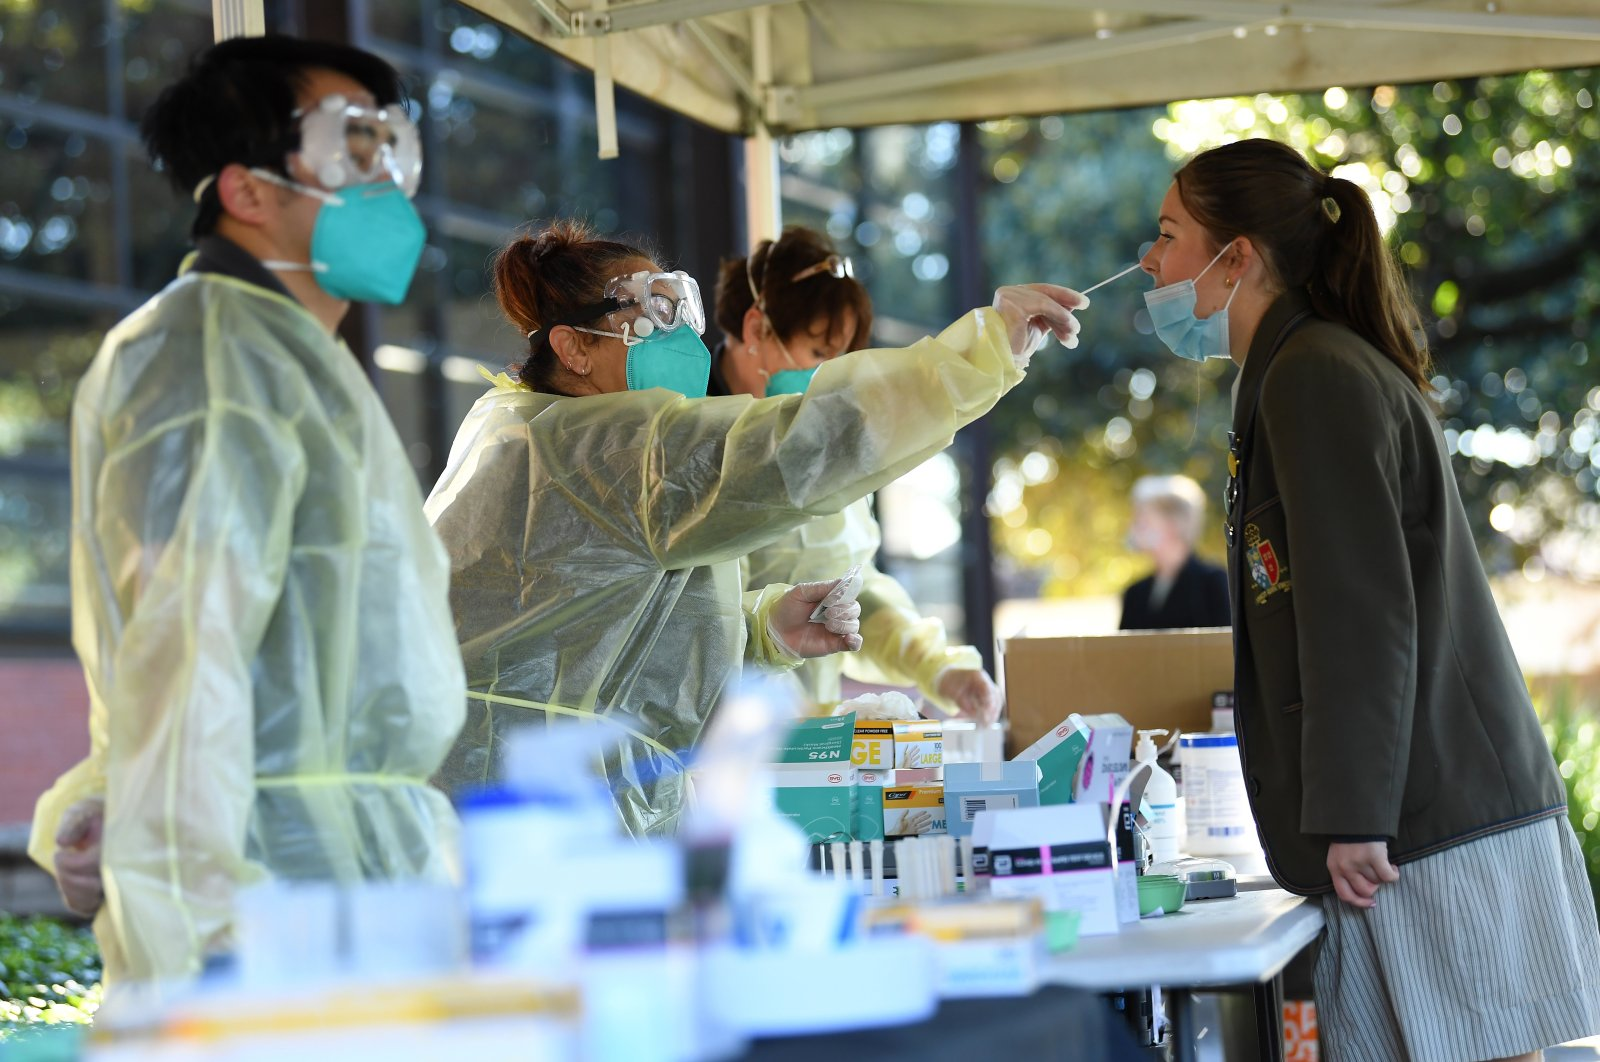 A young woman receives a COVID-19 rapid antigen test administer by a TLC Healthcare worker in Brighton, Melbourne, Australia, Oct. 14, 2021. (EPA Photo)